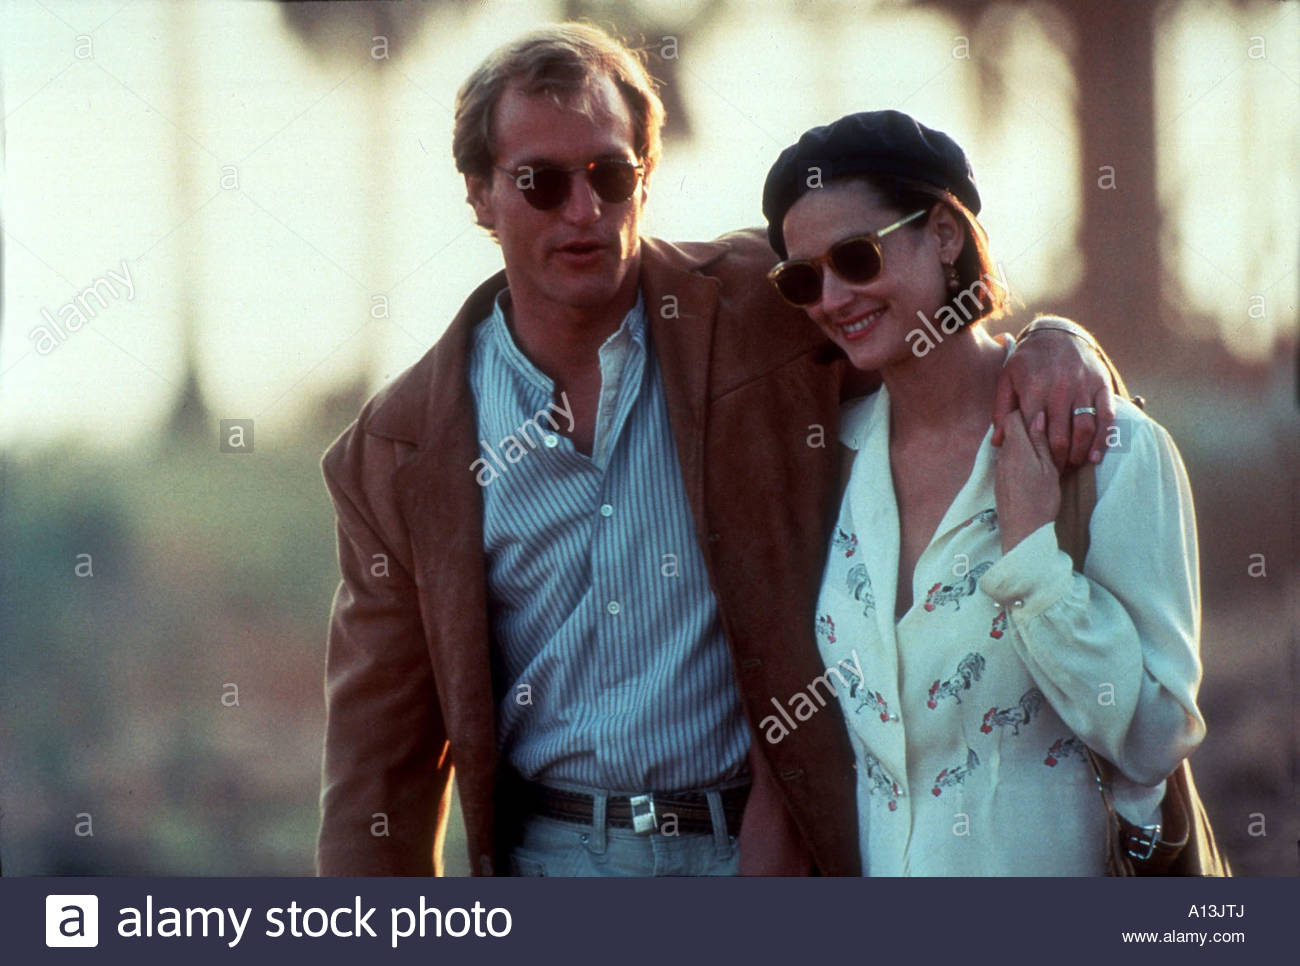 Indecent Proposal Year 1993 Director Adrian Lyne Demi Moore Woody Harrelson - Stock Image